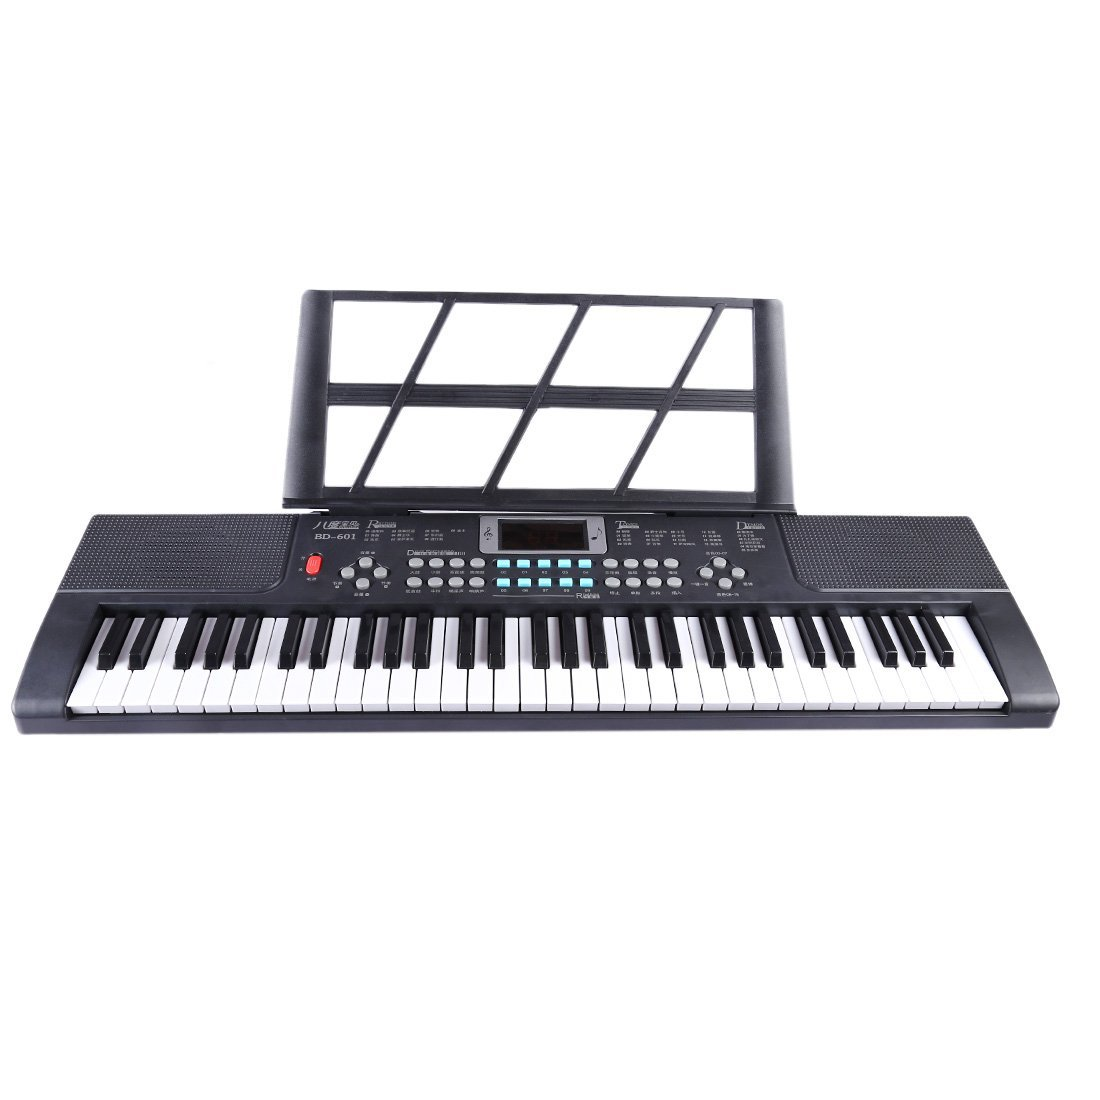 MingCheng 61-Key Digital Music Piano Keyboard Portable Electronic Electronic Organ with Microphone - Black